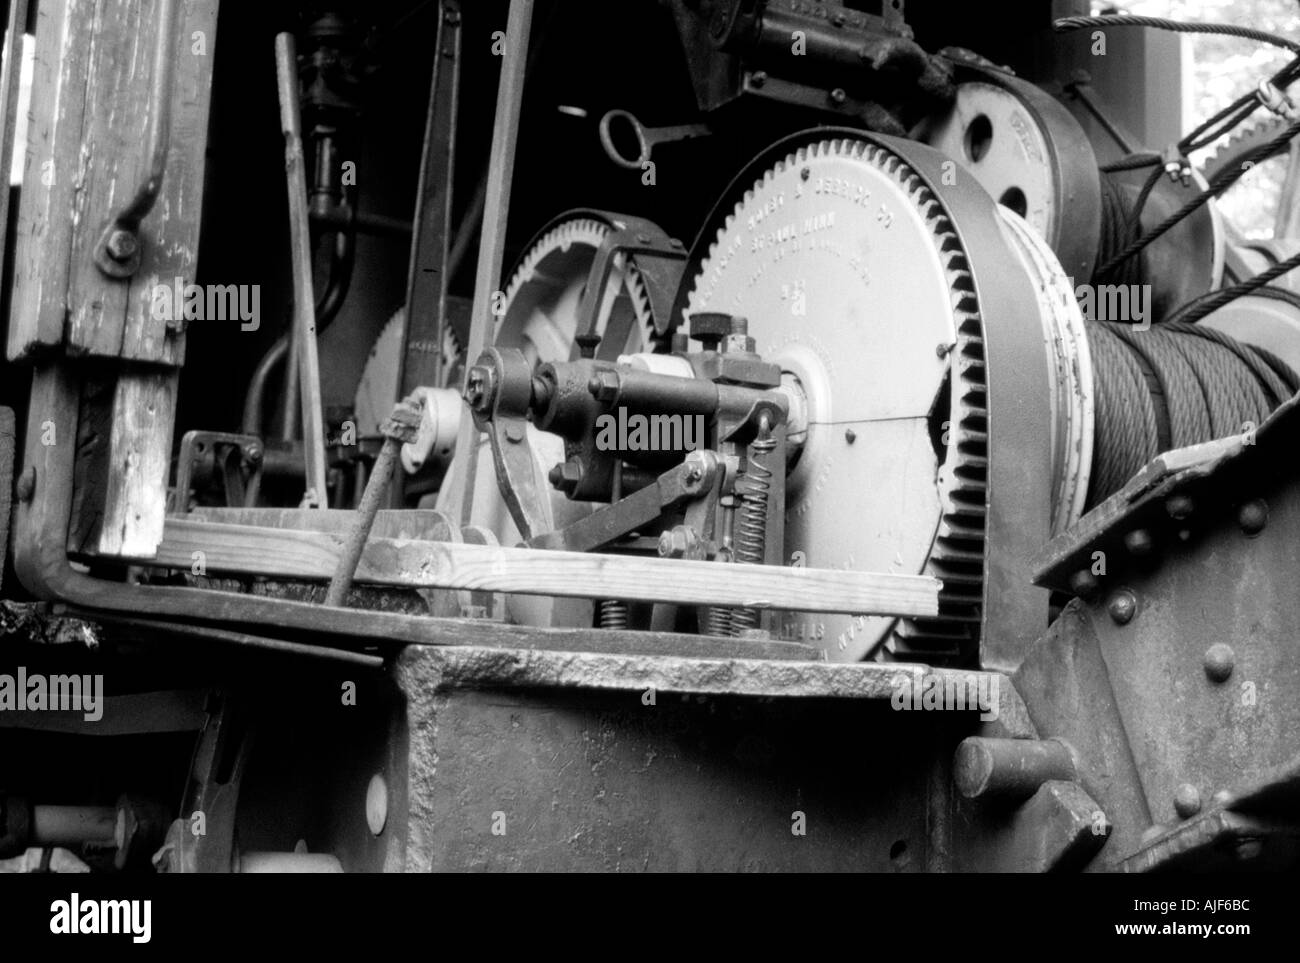 Train winch in Black and White - Stock Image